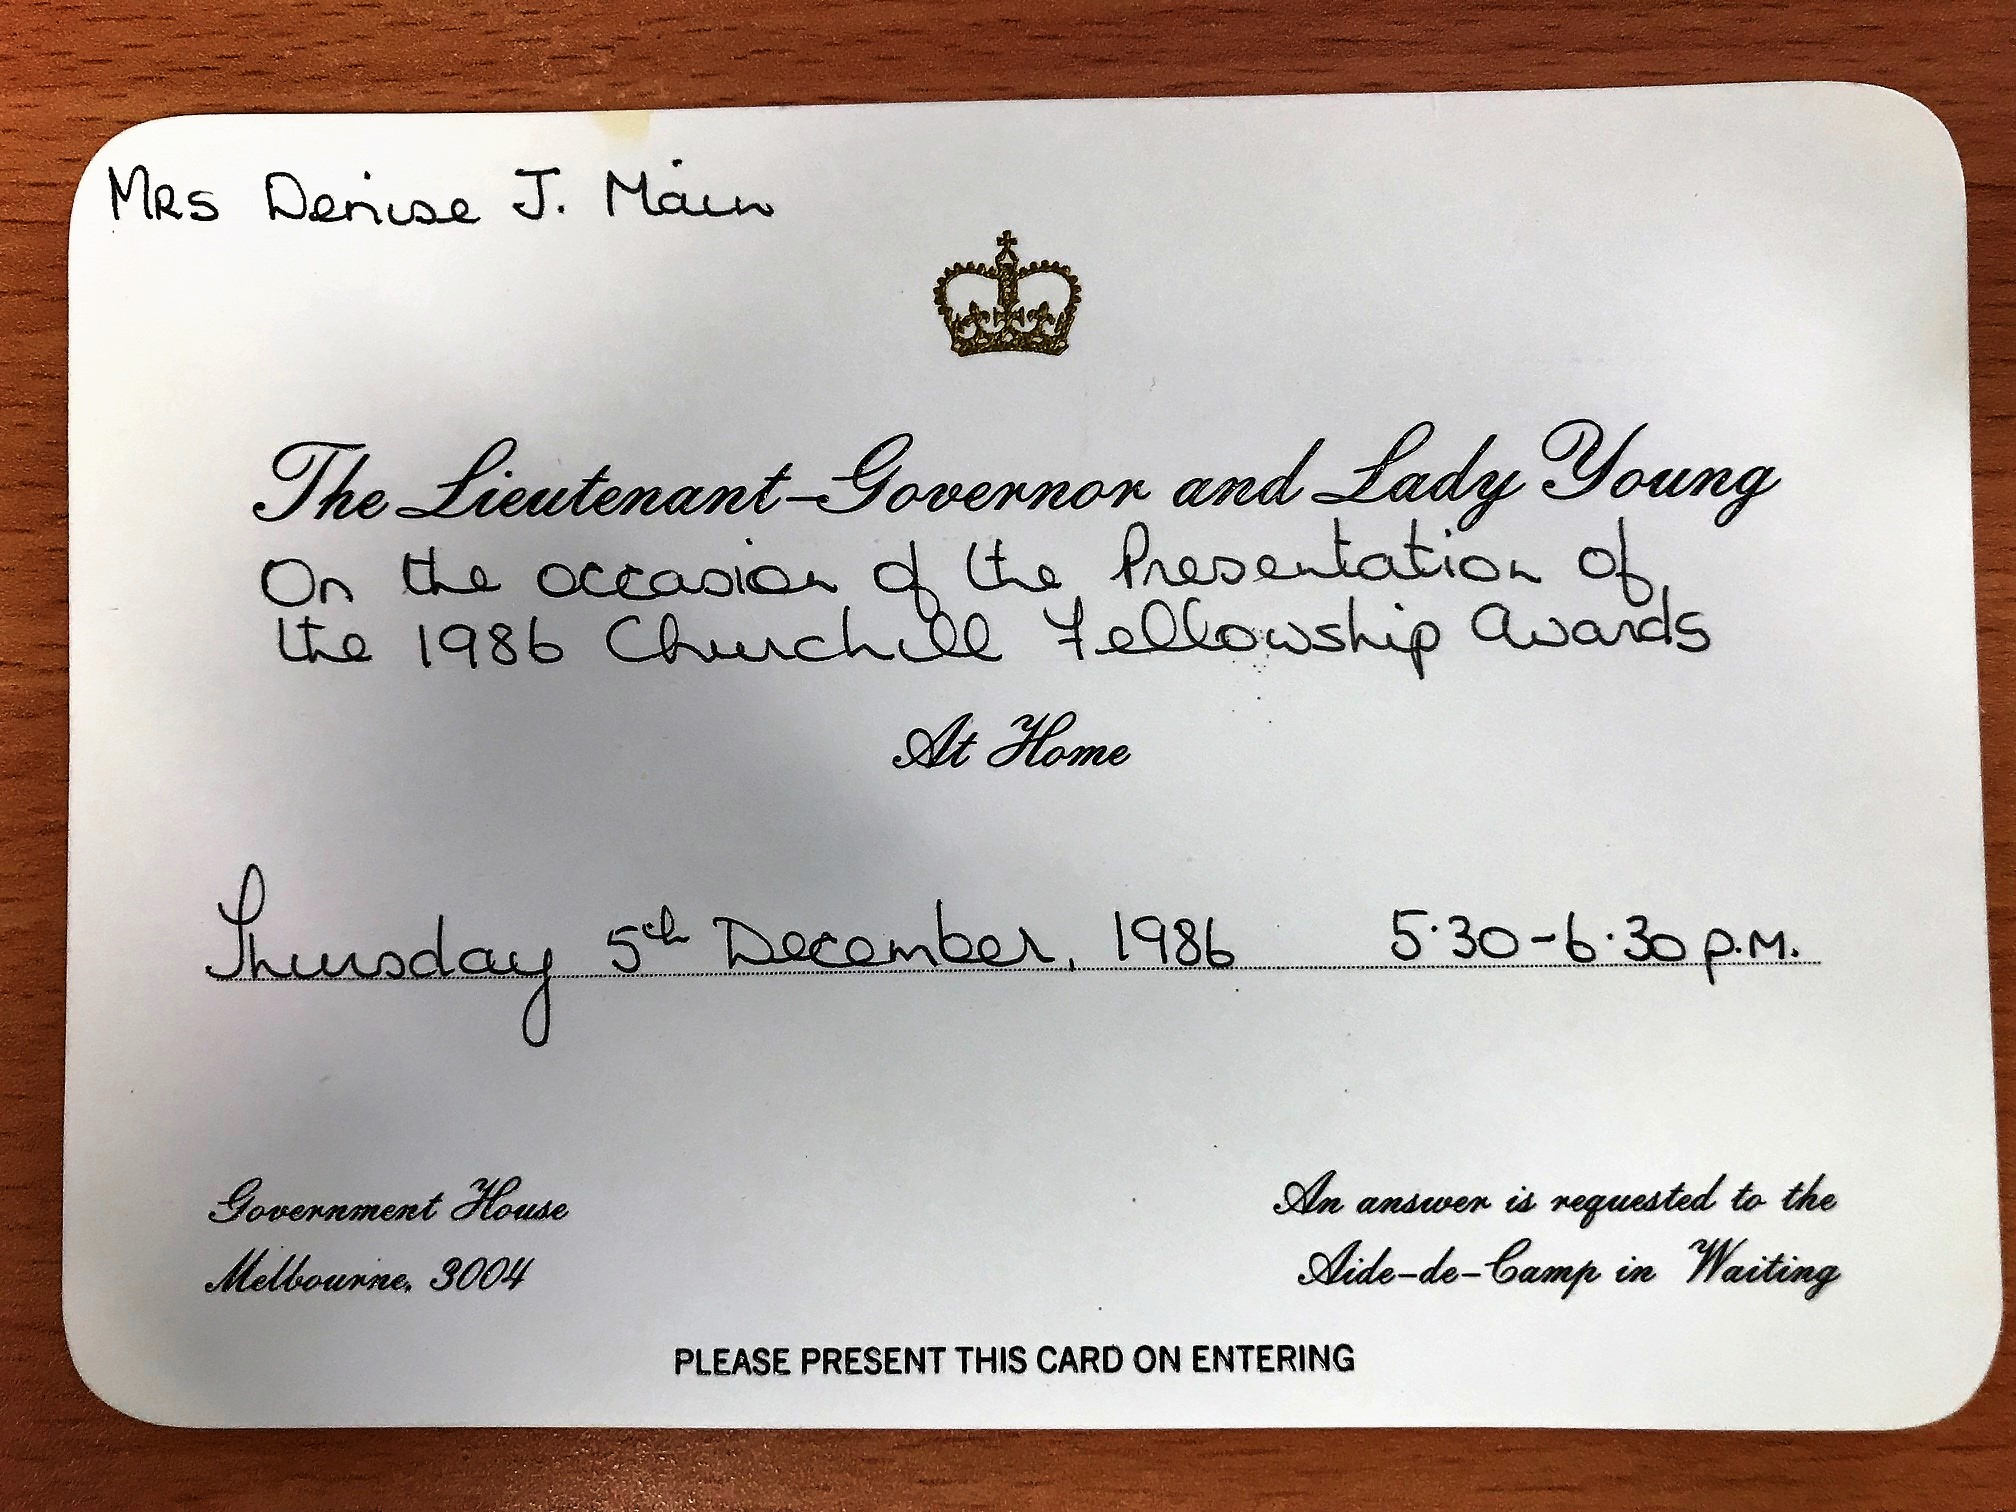 An official invitiation for Denis Main to receive the Churchill Fellowship from the Lieutenant Governor and Lady Young.